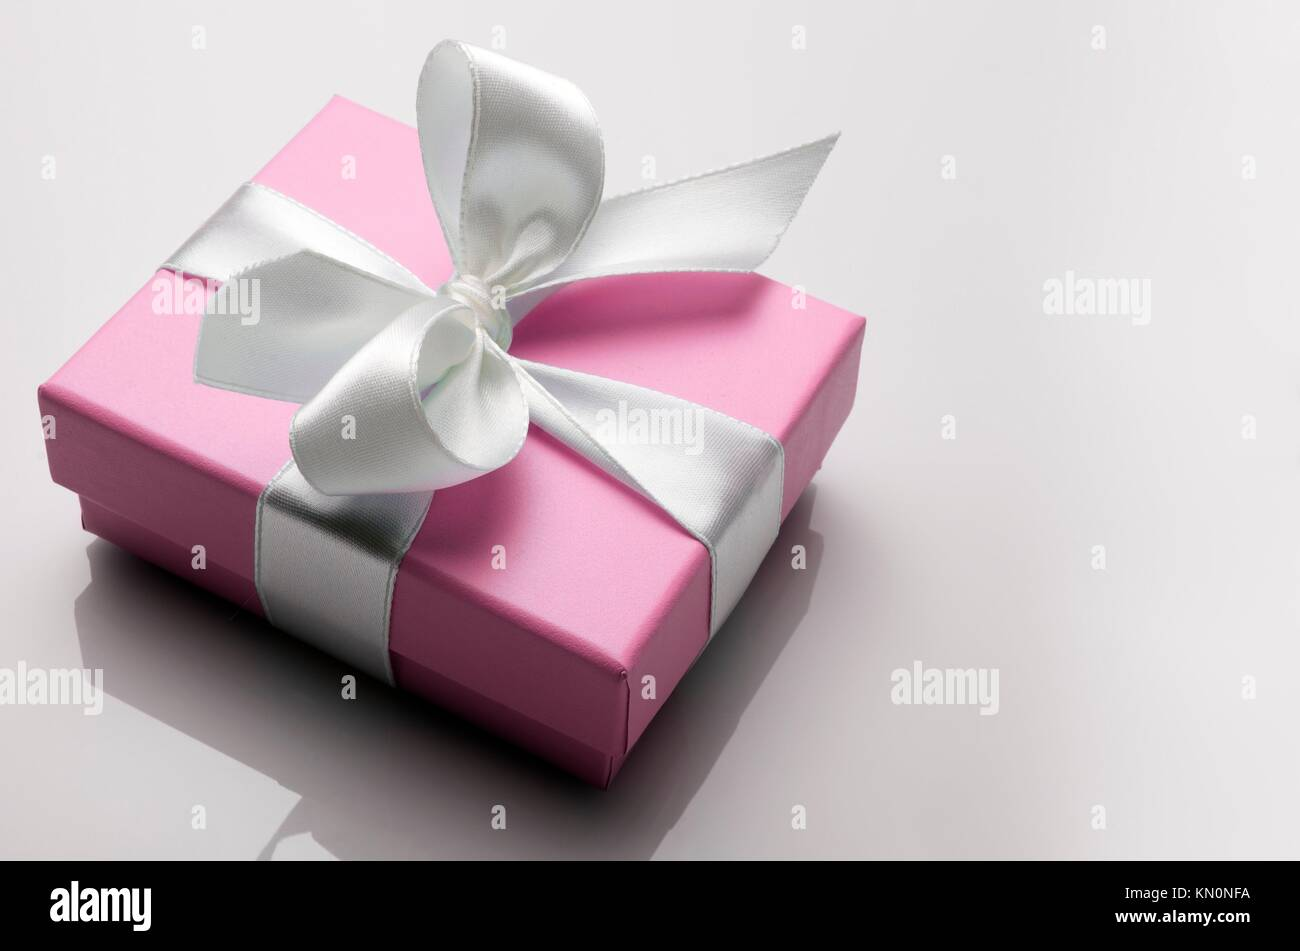 small pink box tied with a white ribbon Stock Photo: 167817982 - Alamy